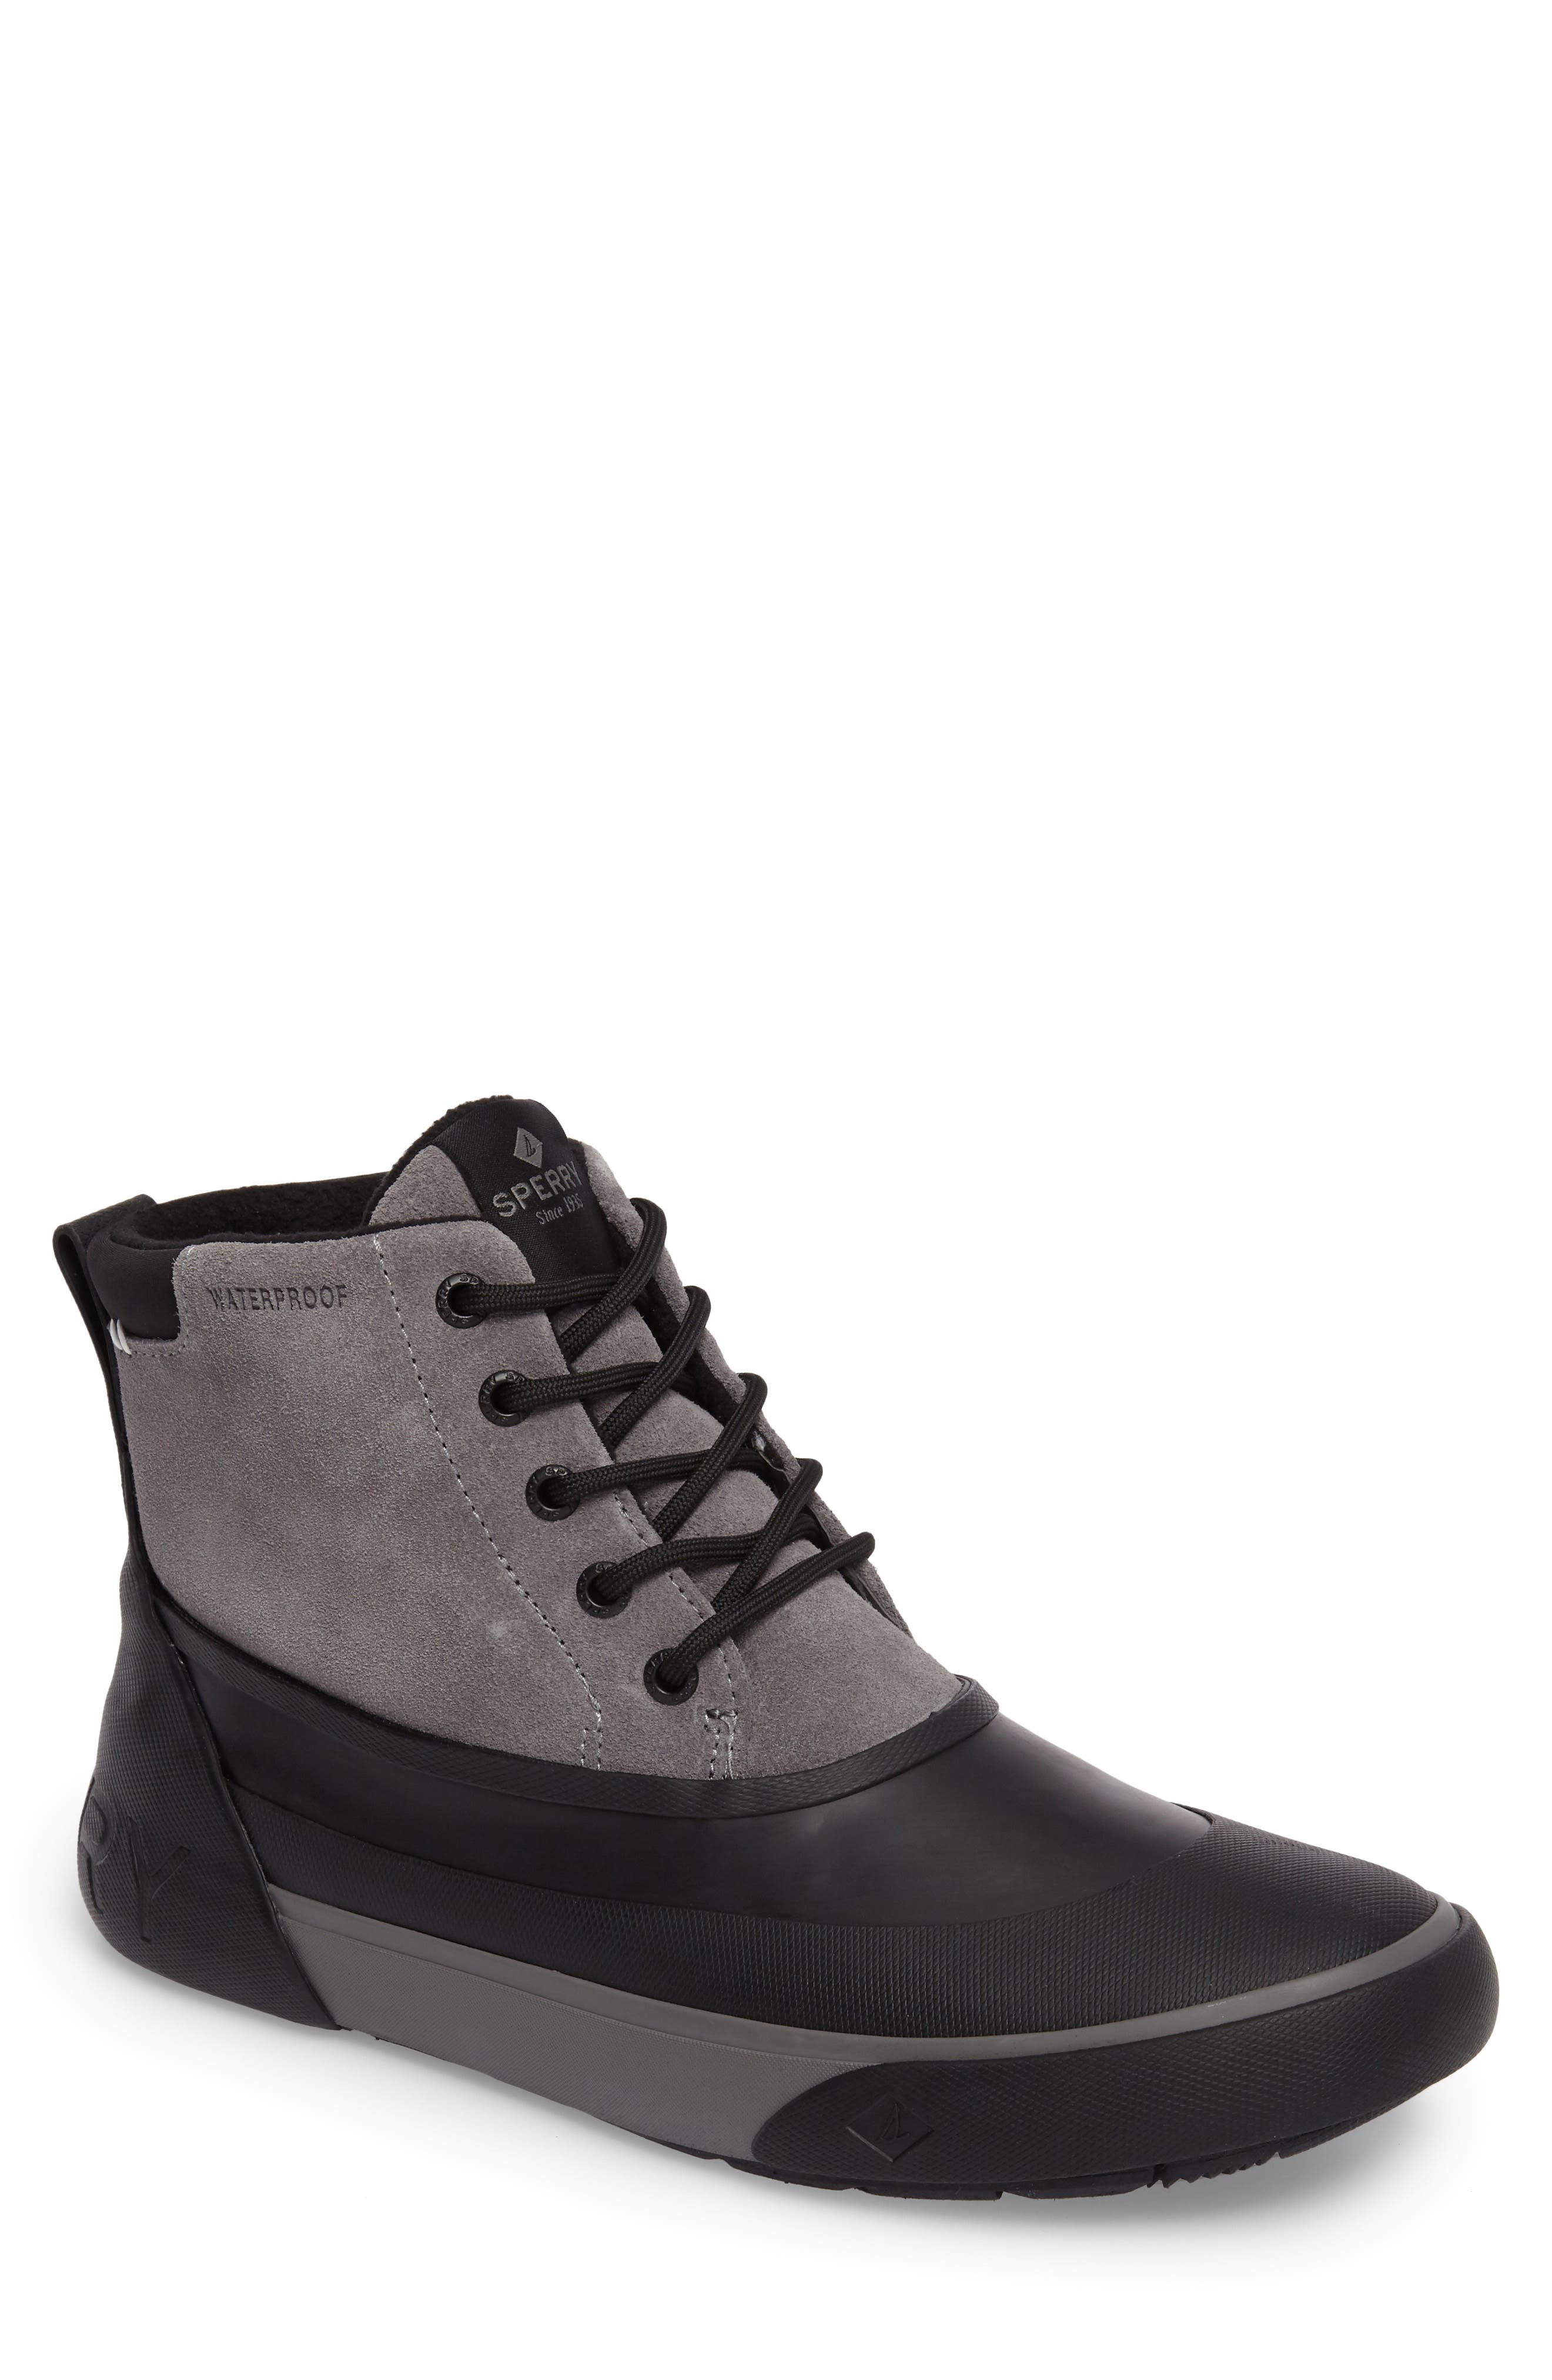 Cutwater Boot,                         Main,                         color, 020